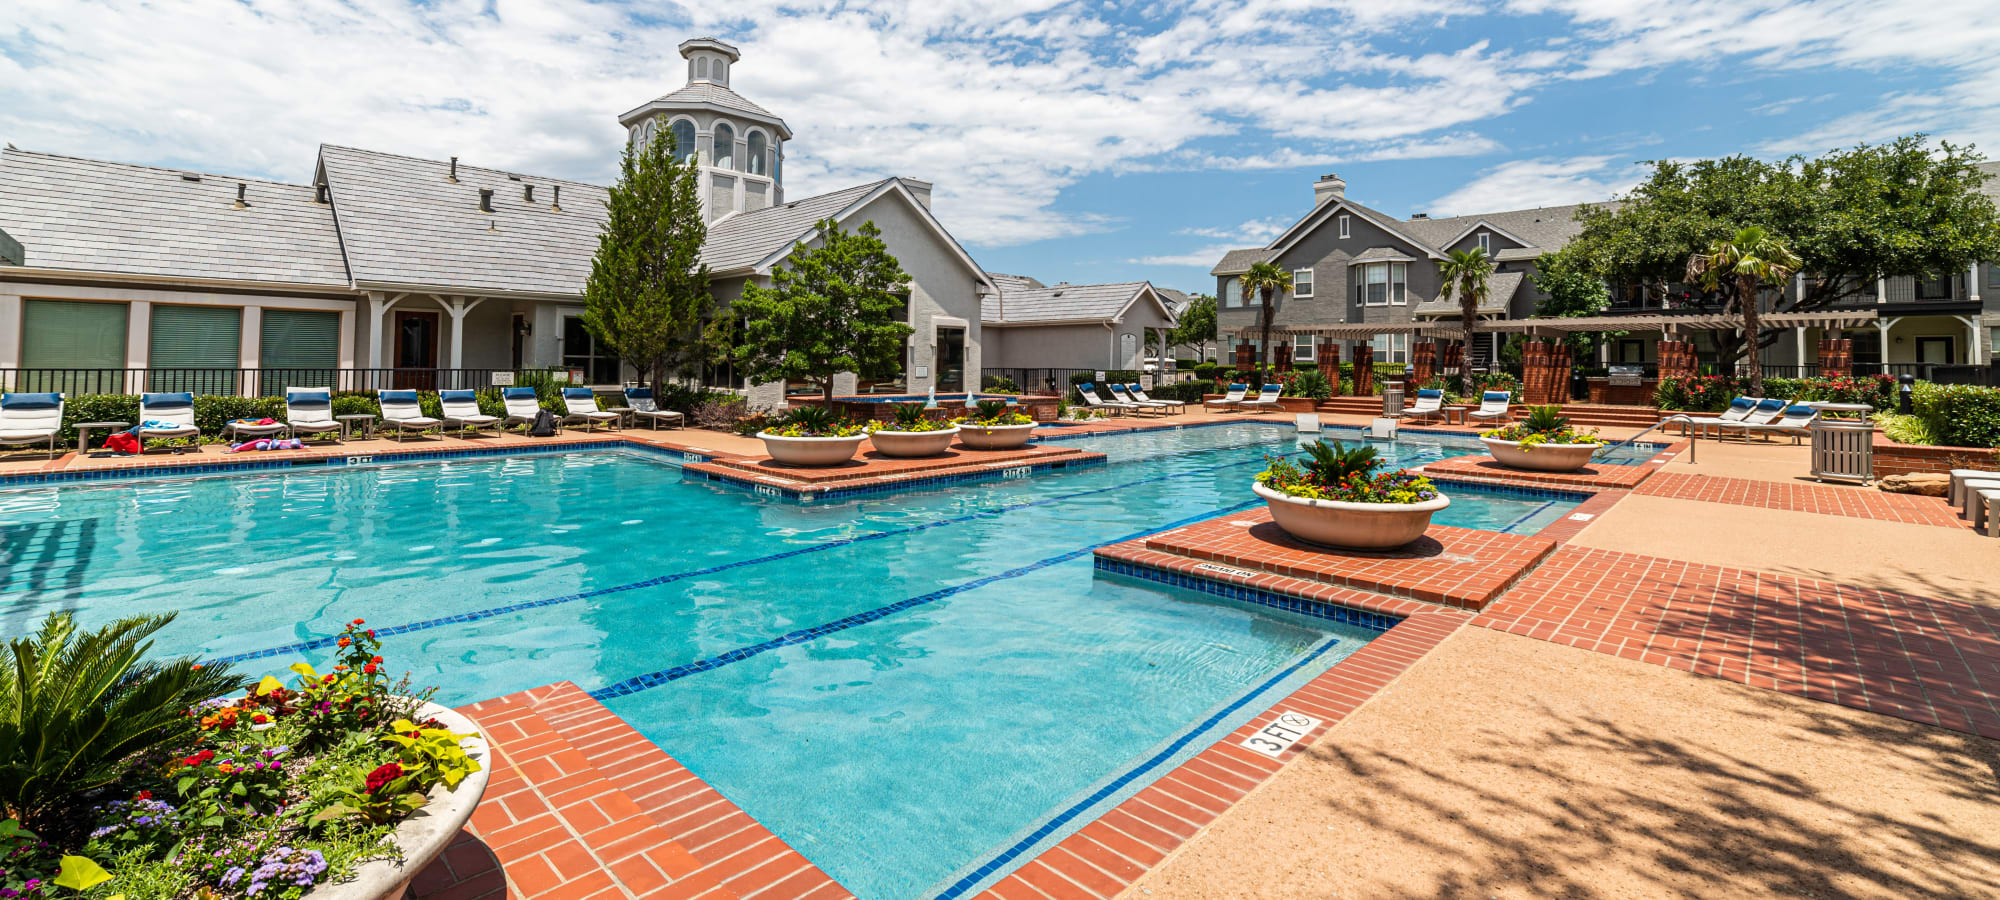 Resident information for Marquis at Lantana in Flower Mound, Texas